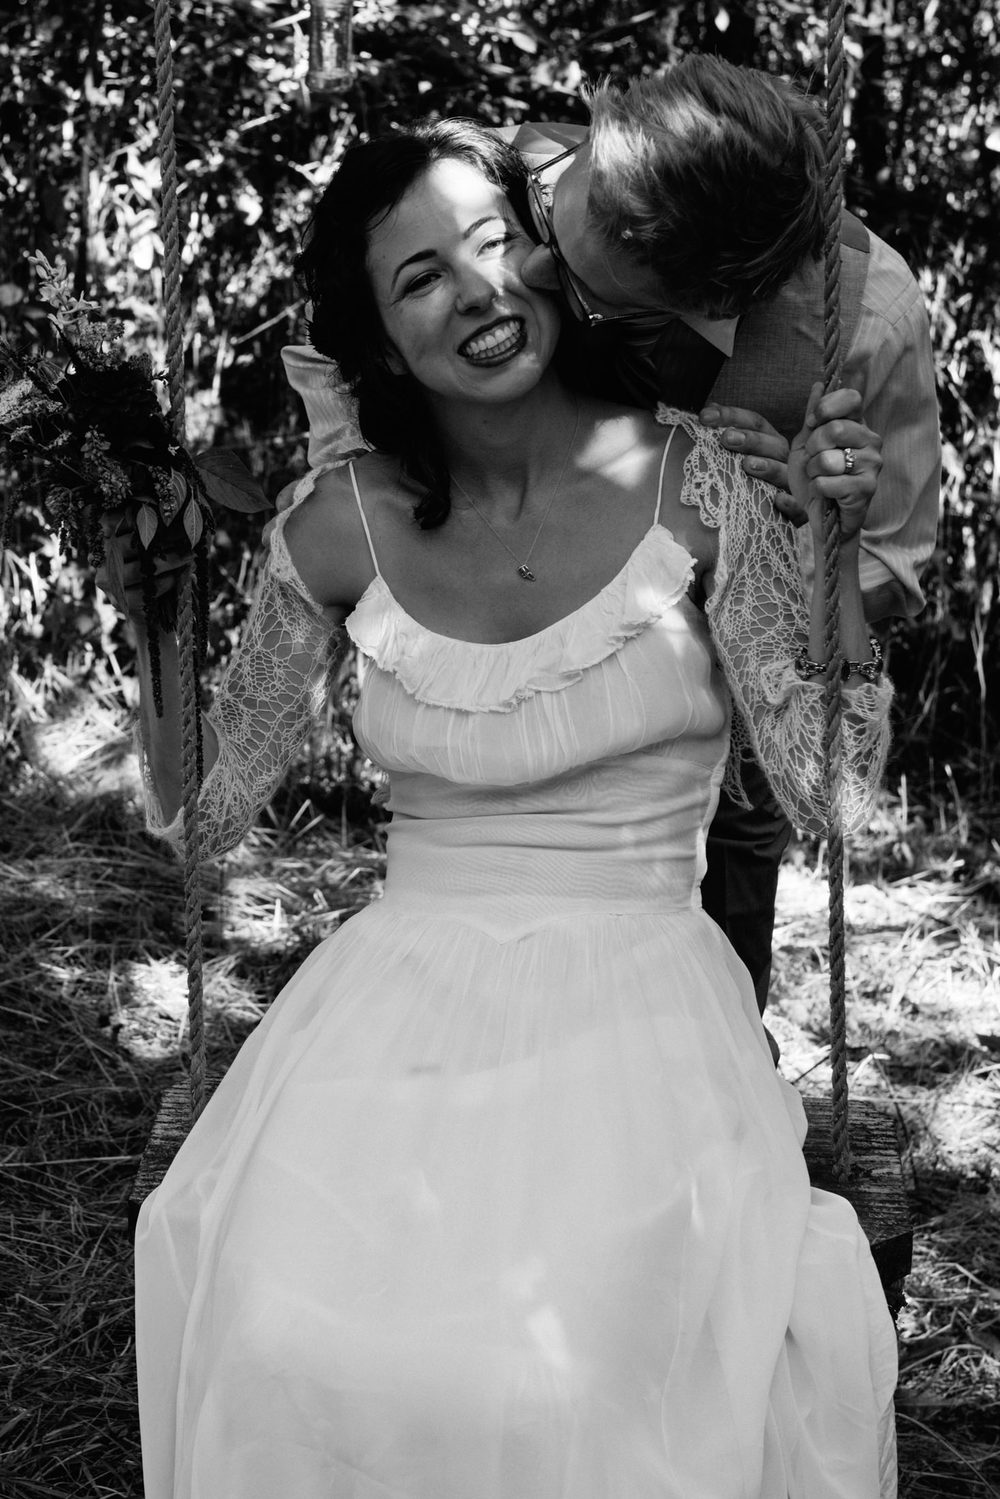 candid-black-and-white-portrait-by-humboldt-county-wedding-photographer-kate-donaldson-photography.jpg